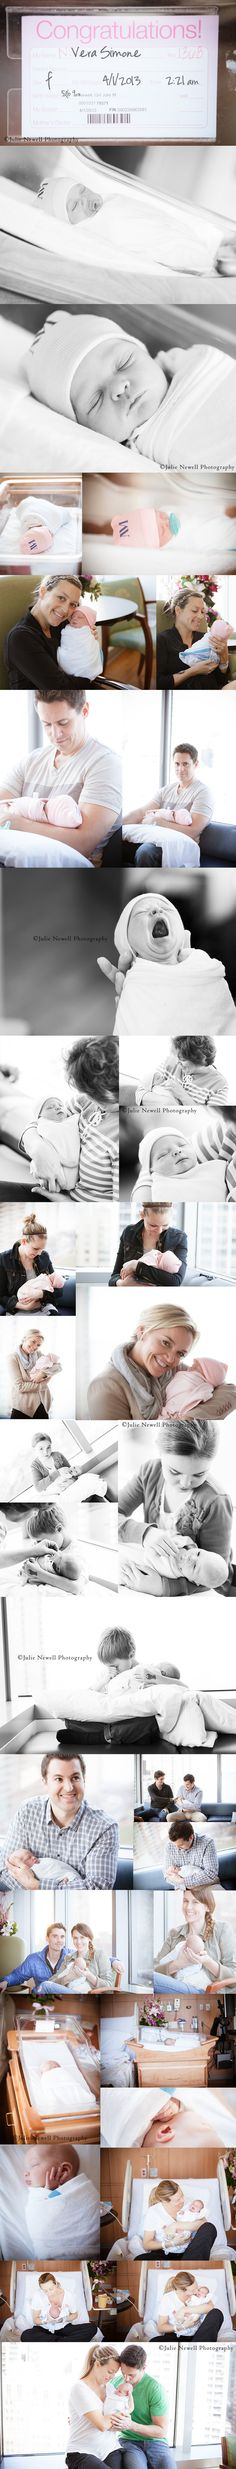 The Arrival of Our Sweet Baby Girl | The Celebrated Baby Julie Newell photography Hospital newborn photos